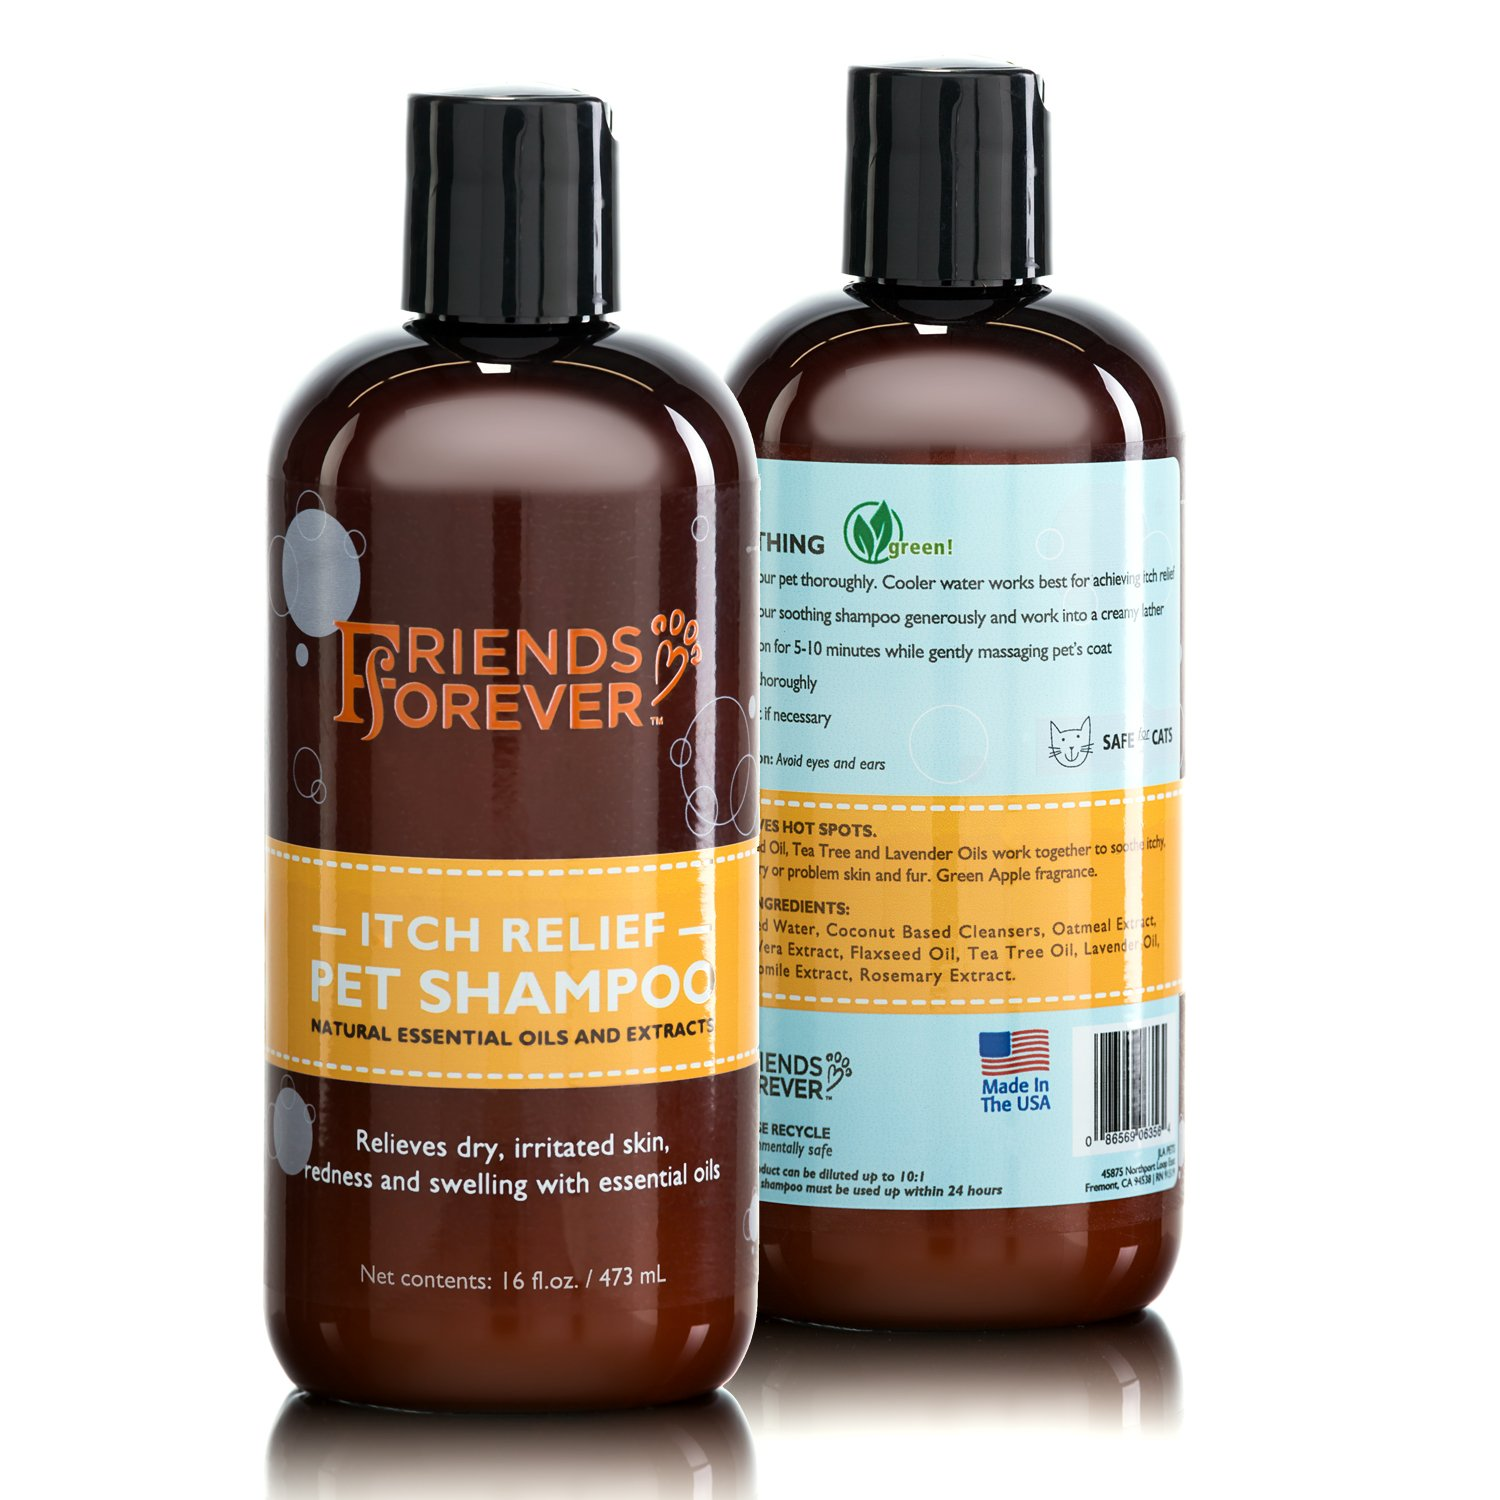 Friends Forever Natural Dog Shampoo for Dry Itchy Skin - Oatmeal Aloe Vera Pet Shampoo For Dog Wash with Flaxseed, Tea Tree and Lavender Oil